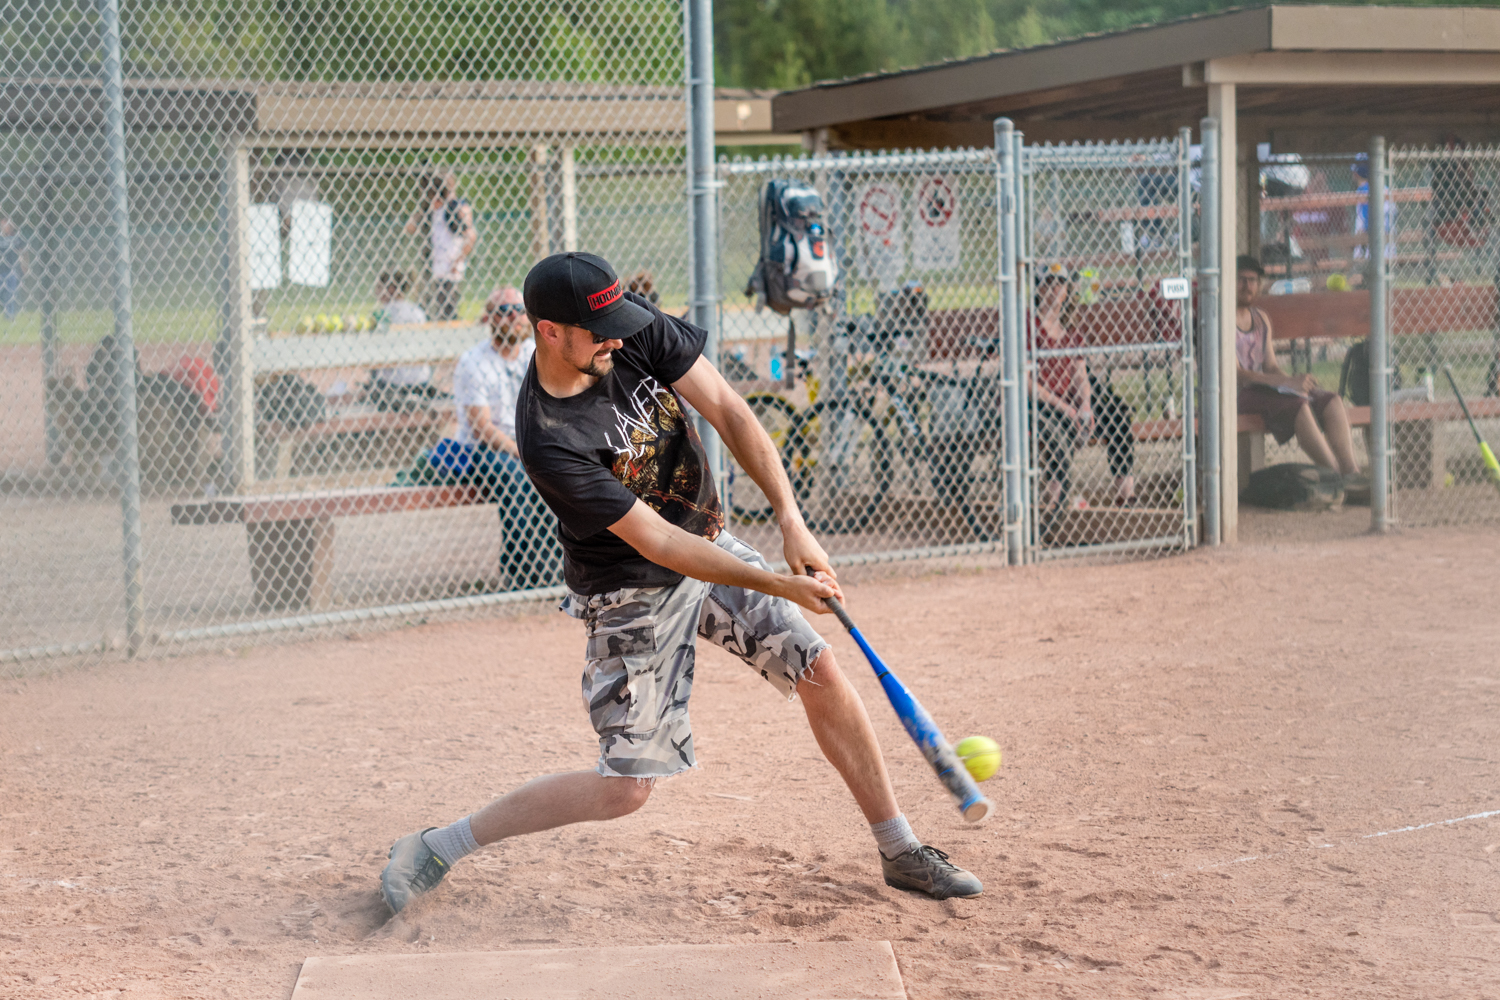 2017 08 22 Softball Playoffs 1-175.jpg